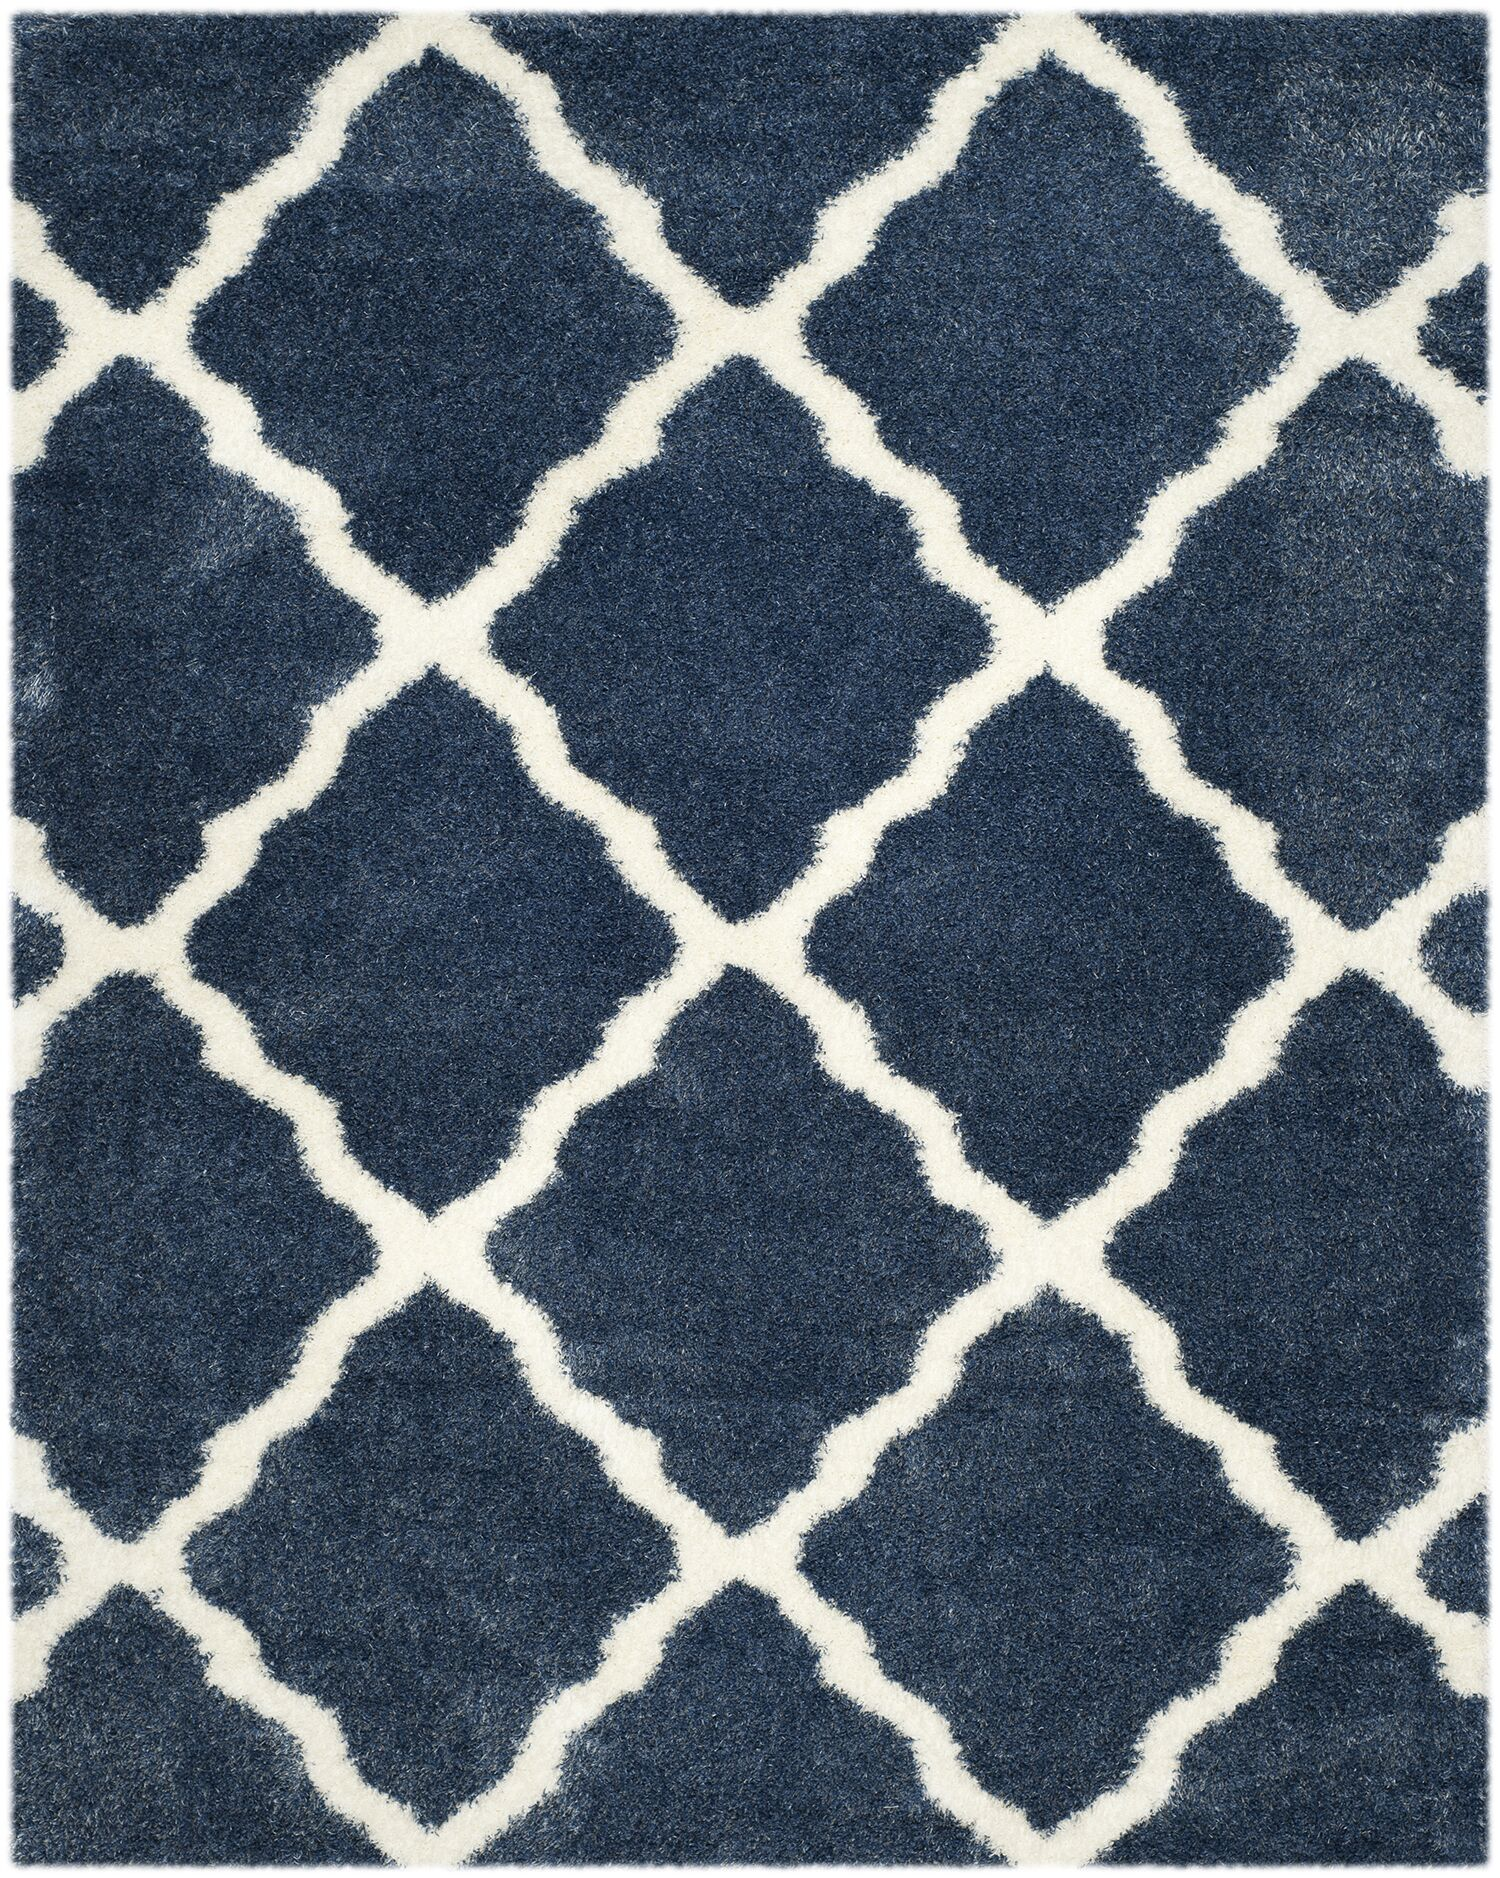 Macungie Blue / Ivory Indoor Area Rug Rug Size: Rectangle 8' x 10'